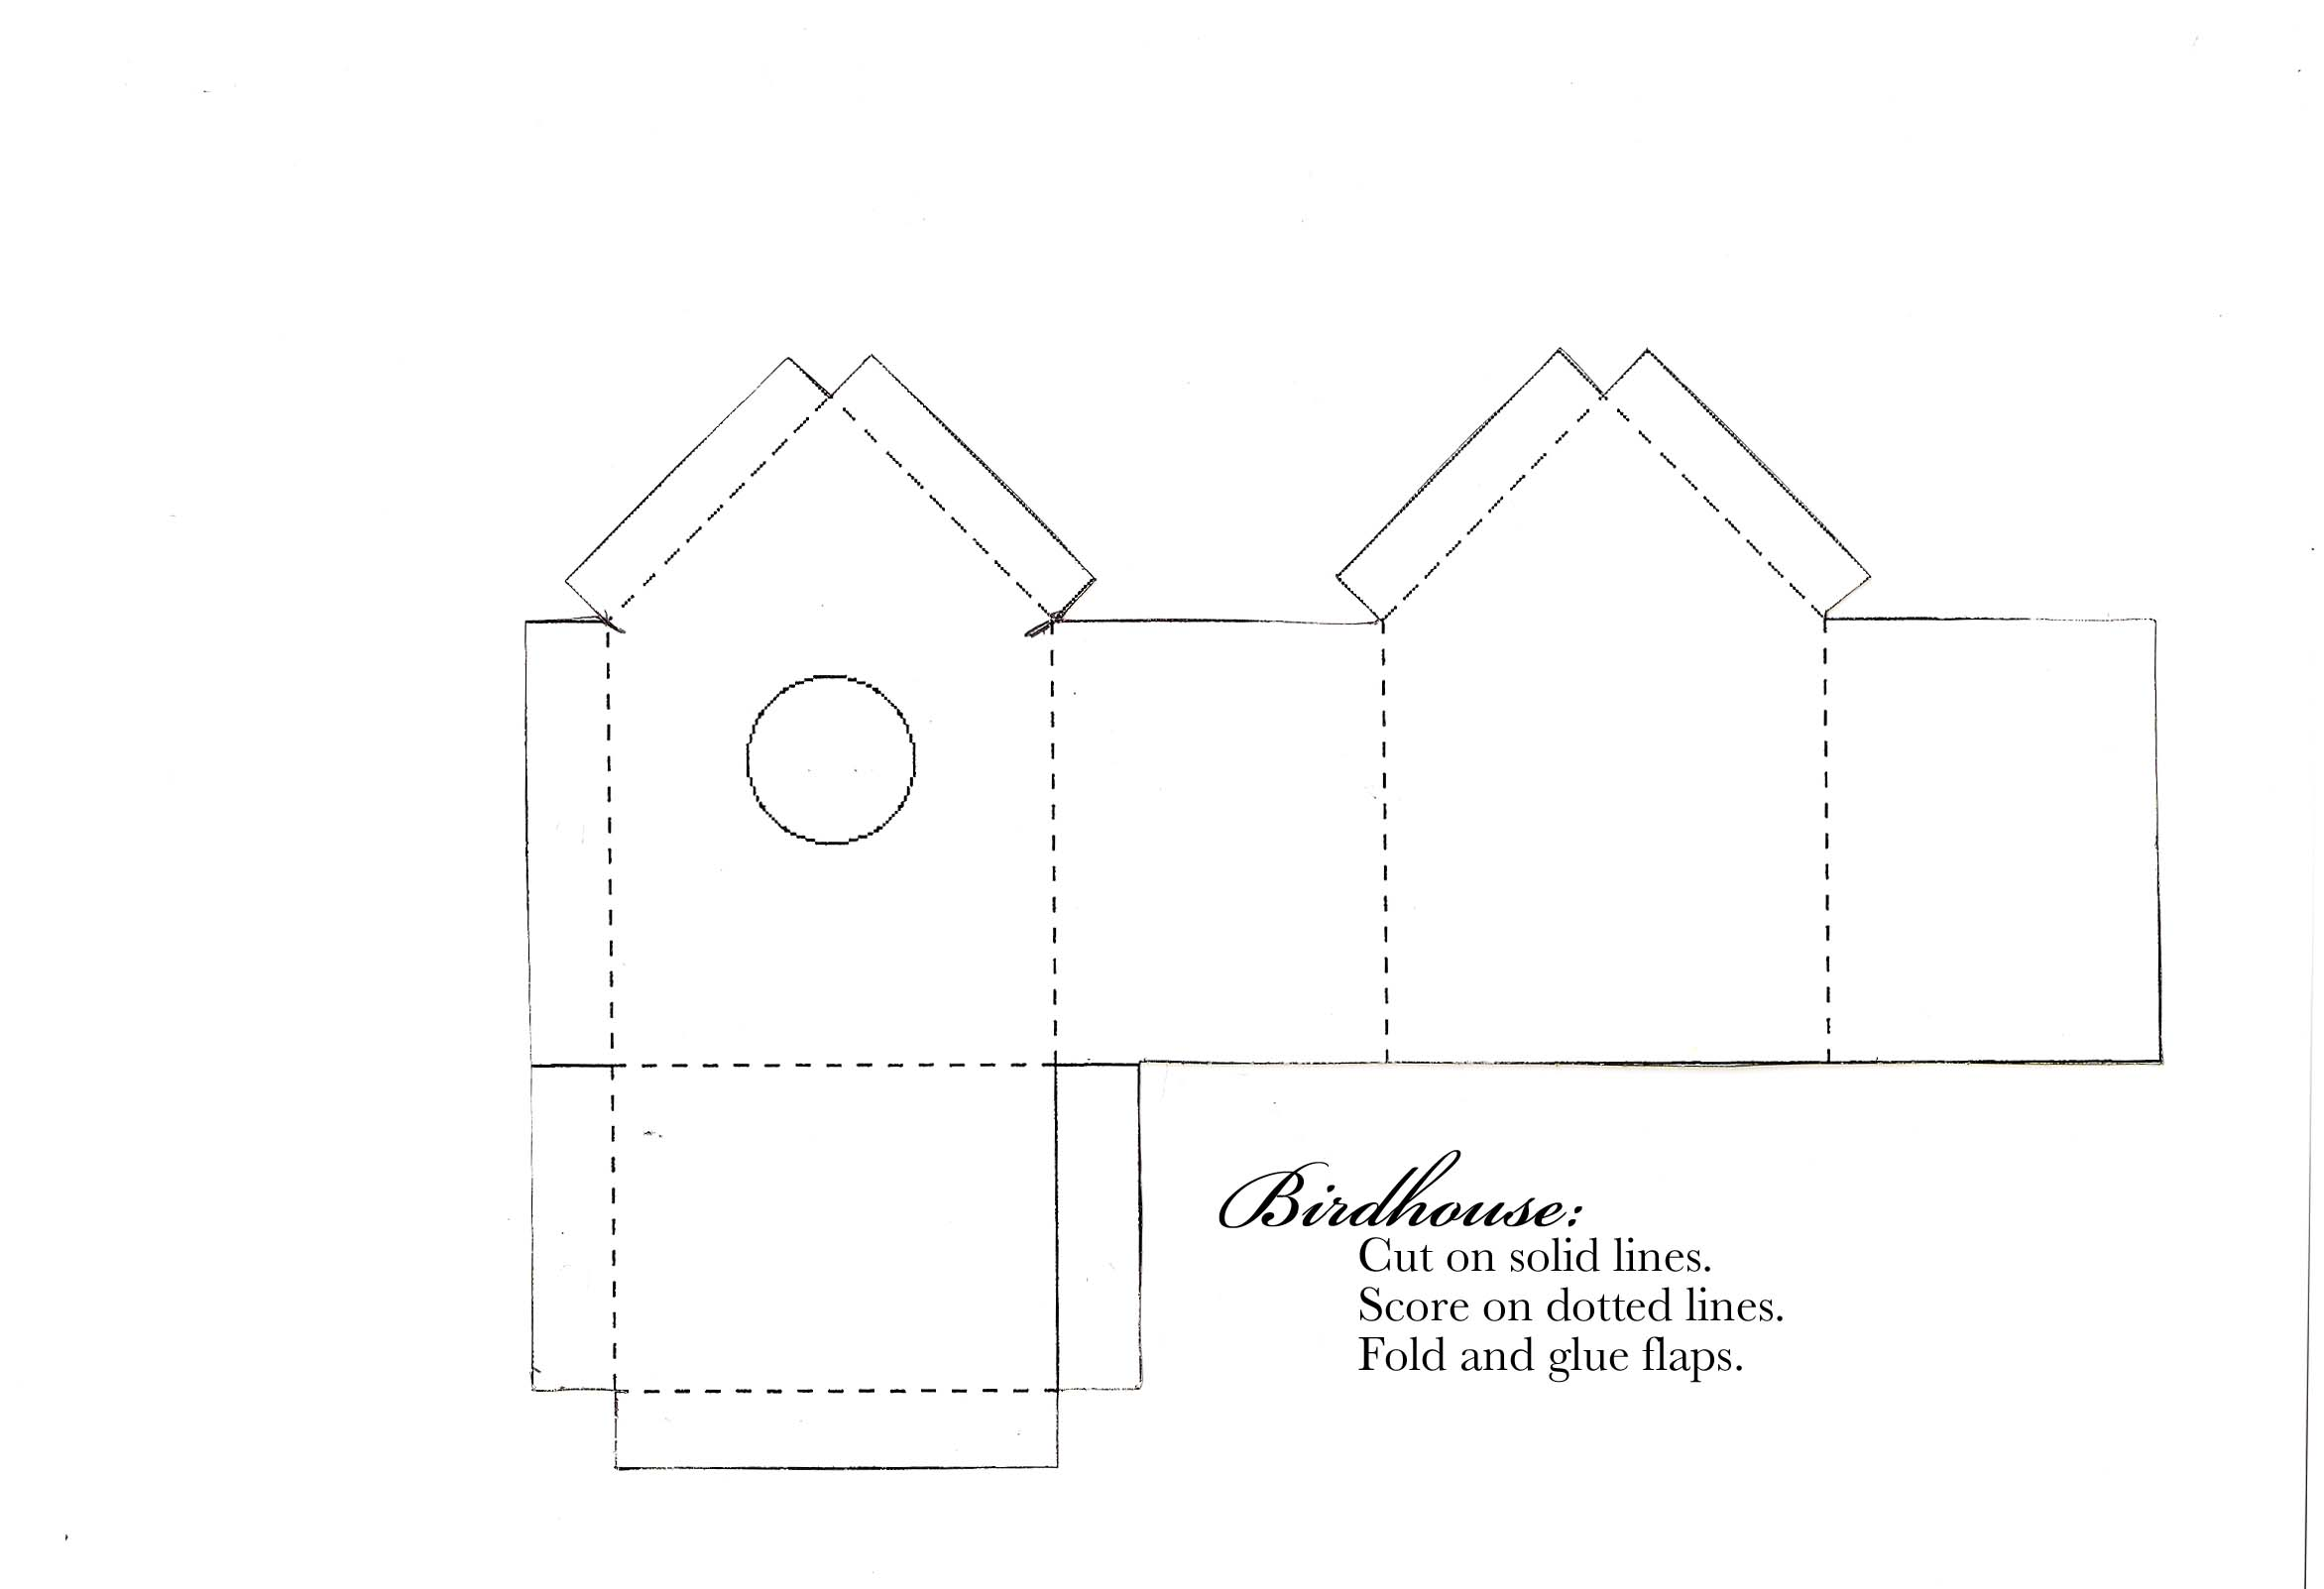 3D Paper House Patterns http://cardoftheweek.com/2009/03/birdhouse-chall/